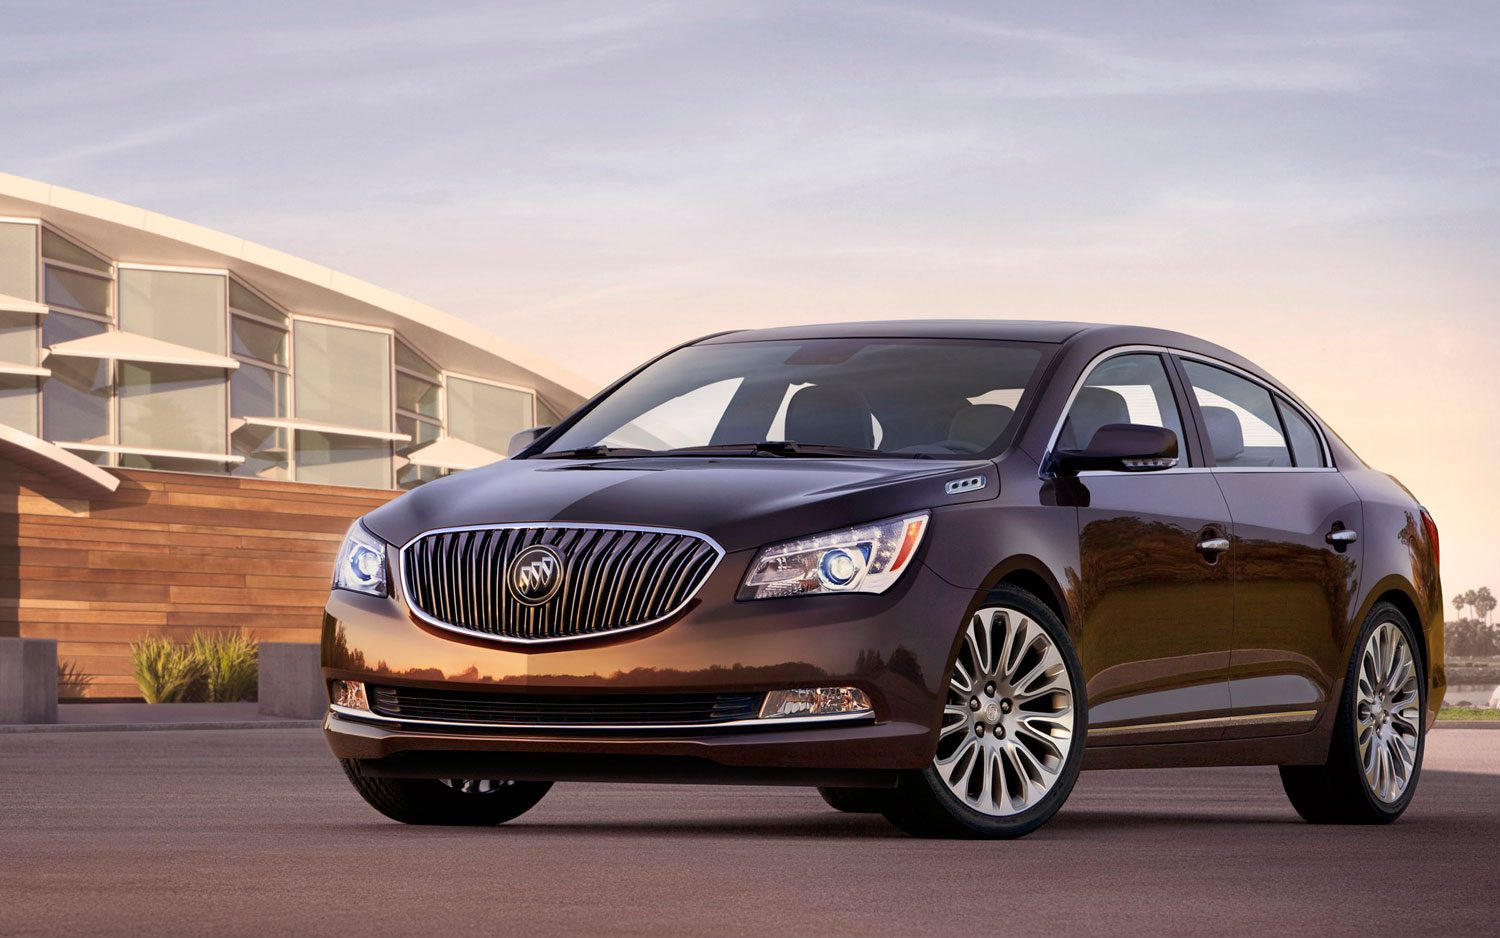 First Look 2014 Buick Lacrosse Automobile Magazine